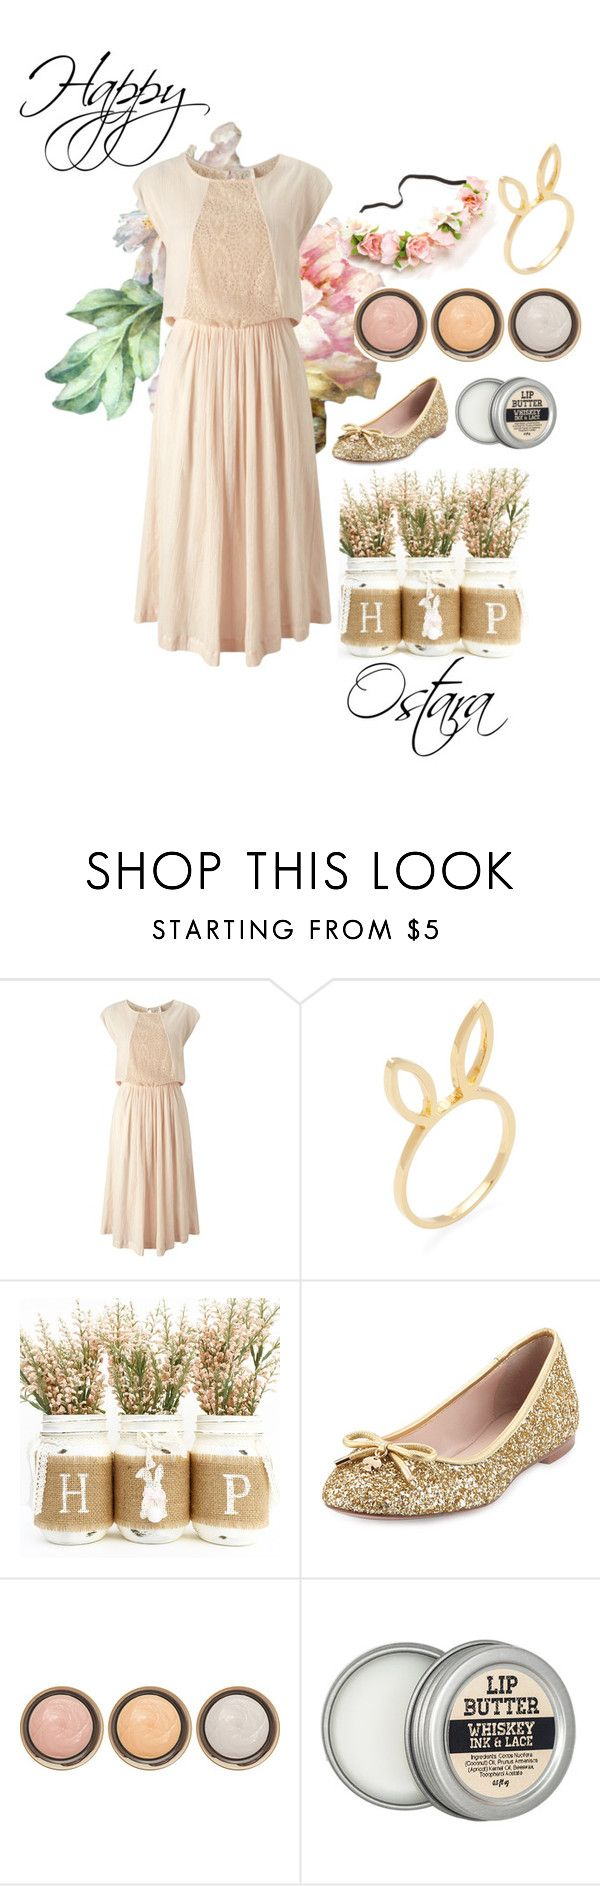 """""""Happy Ostara"""" by glitteringbeast ❤ liked on Polyvore featuring Des Petits Hauts, Jacquie Aiche, Kate Spade, By Terry, Spring, Easter, pagan, witch and Ostara"""